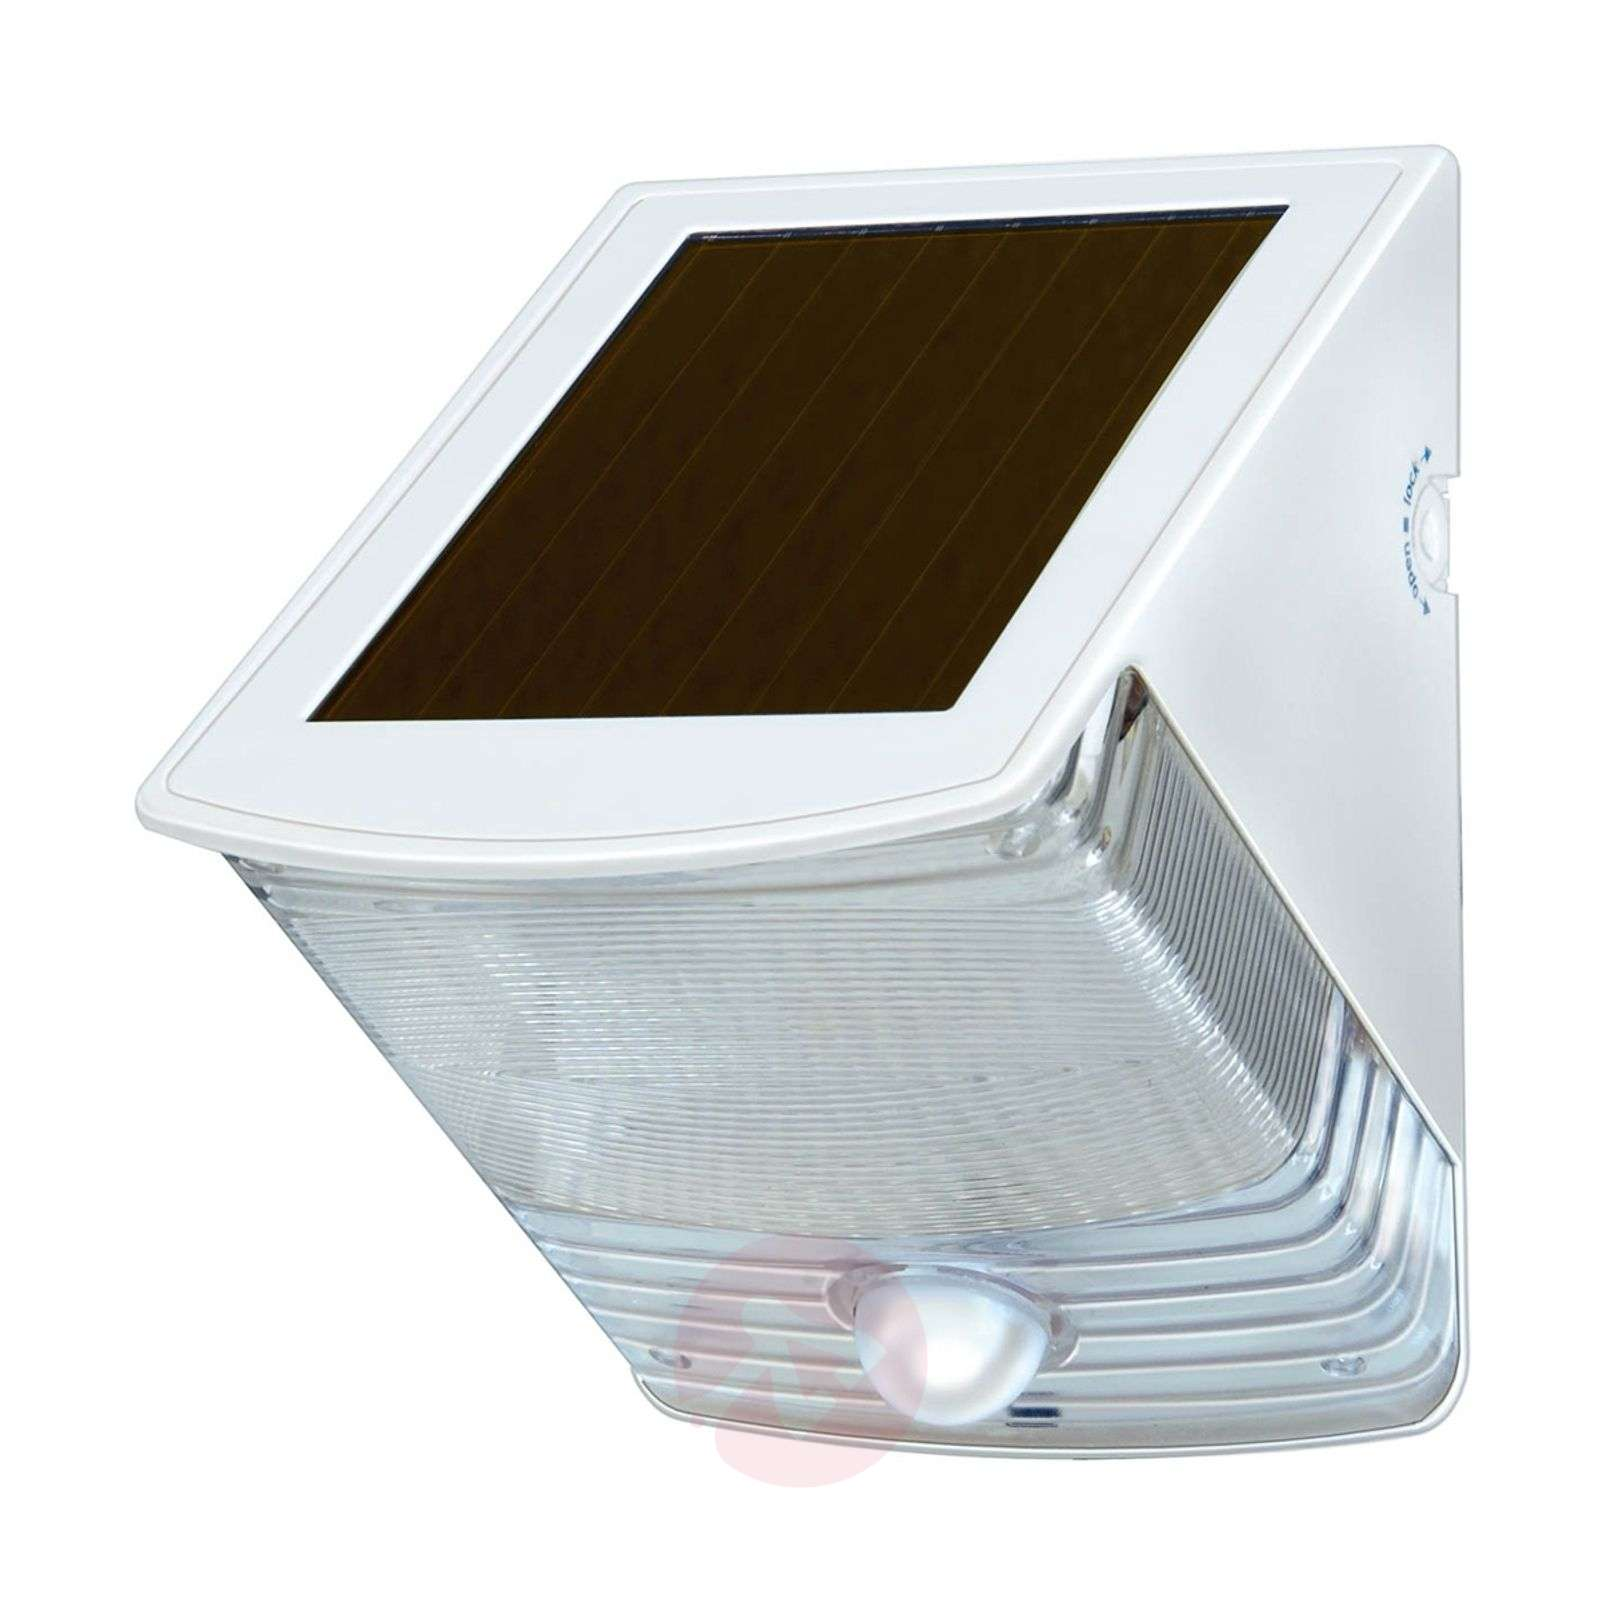 Solar-LED-wandlamp SOL 04 IP44 wit